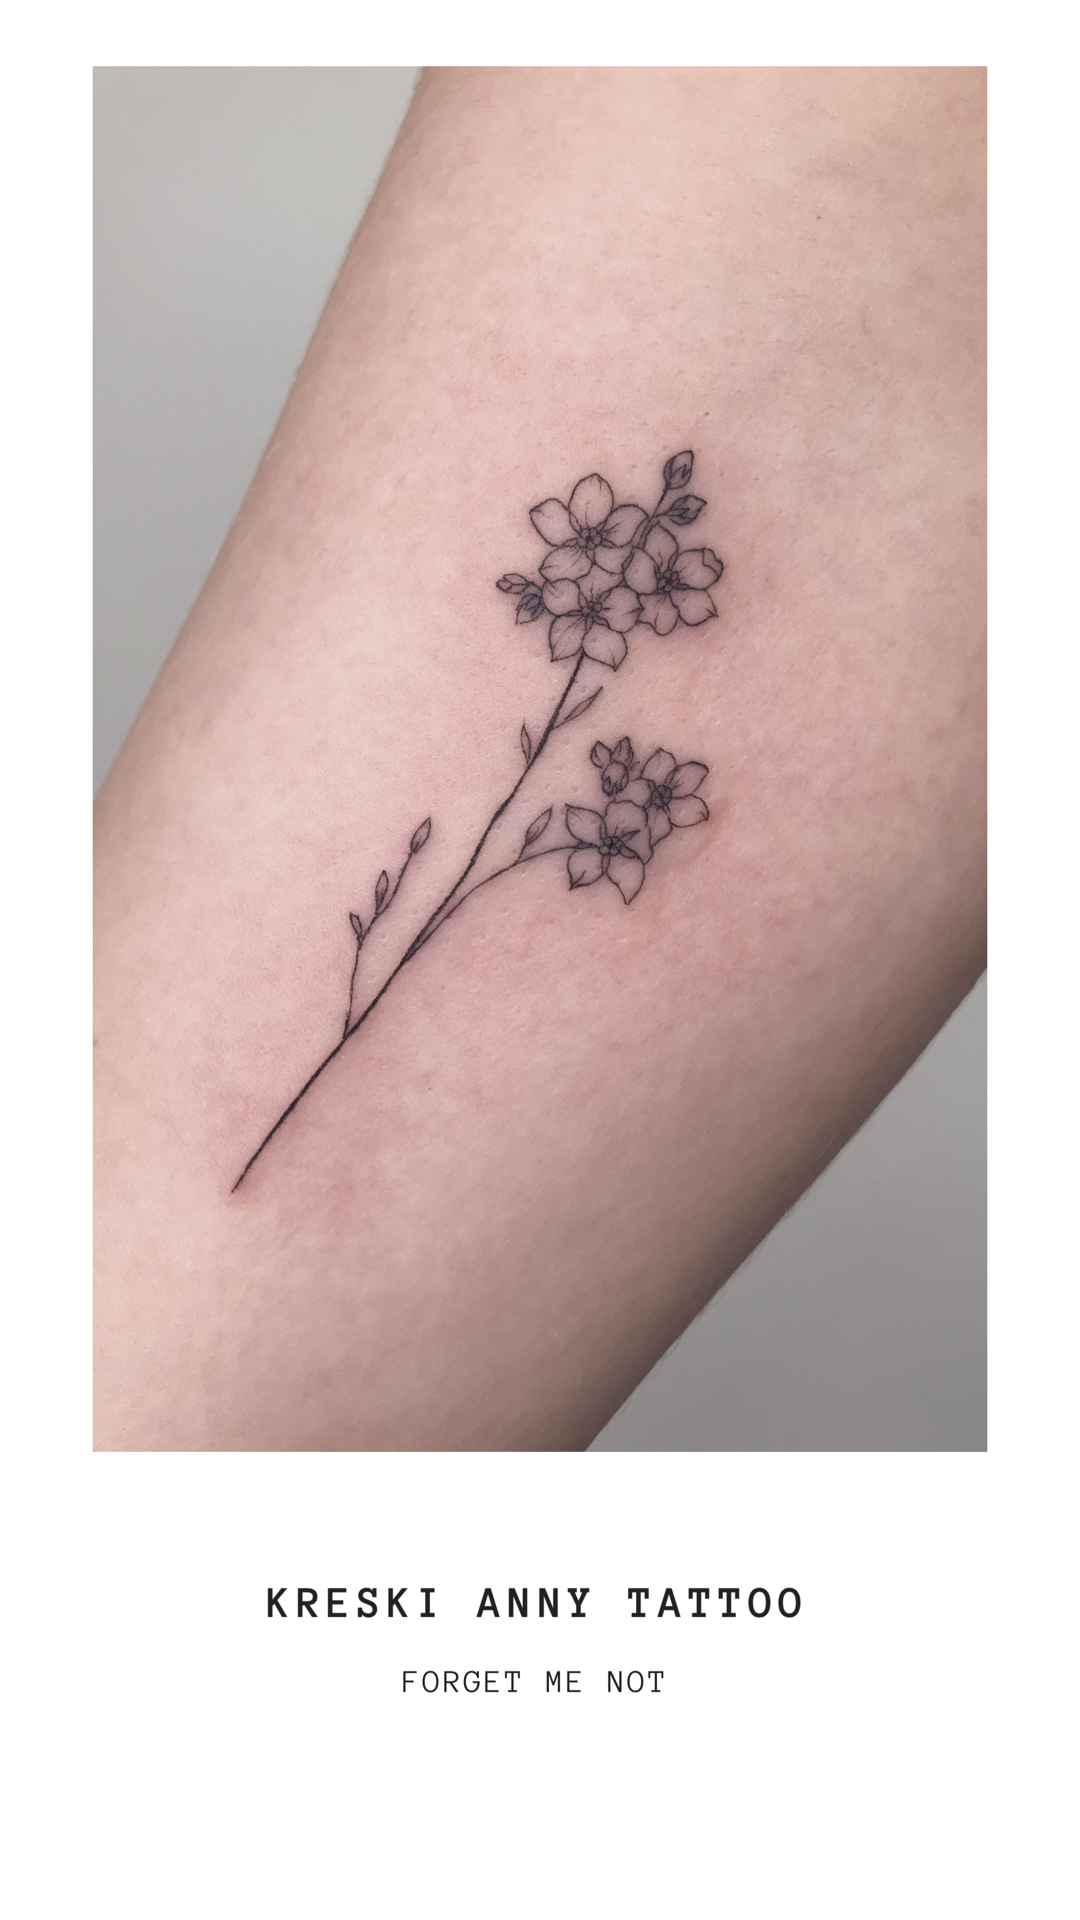 Photo of Fineline tattoo of forget me not flower – Kreski Anny Tattoo